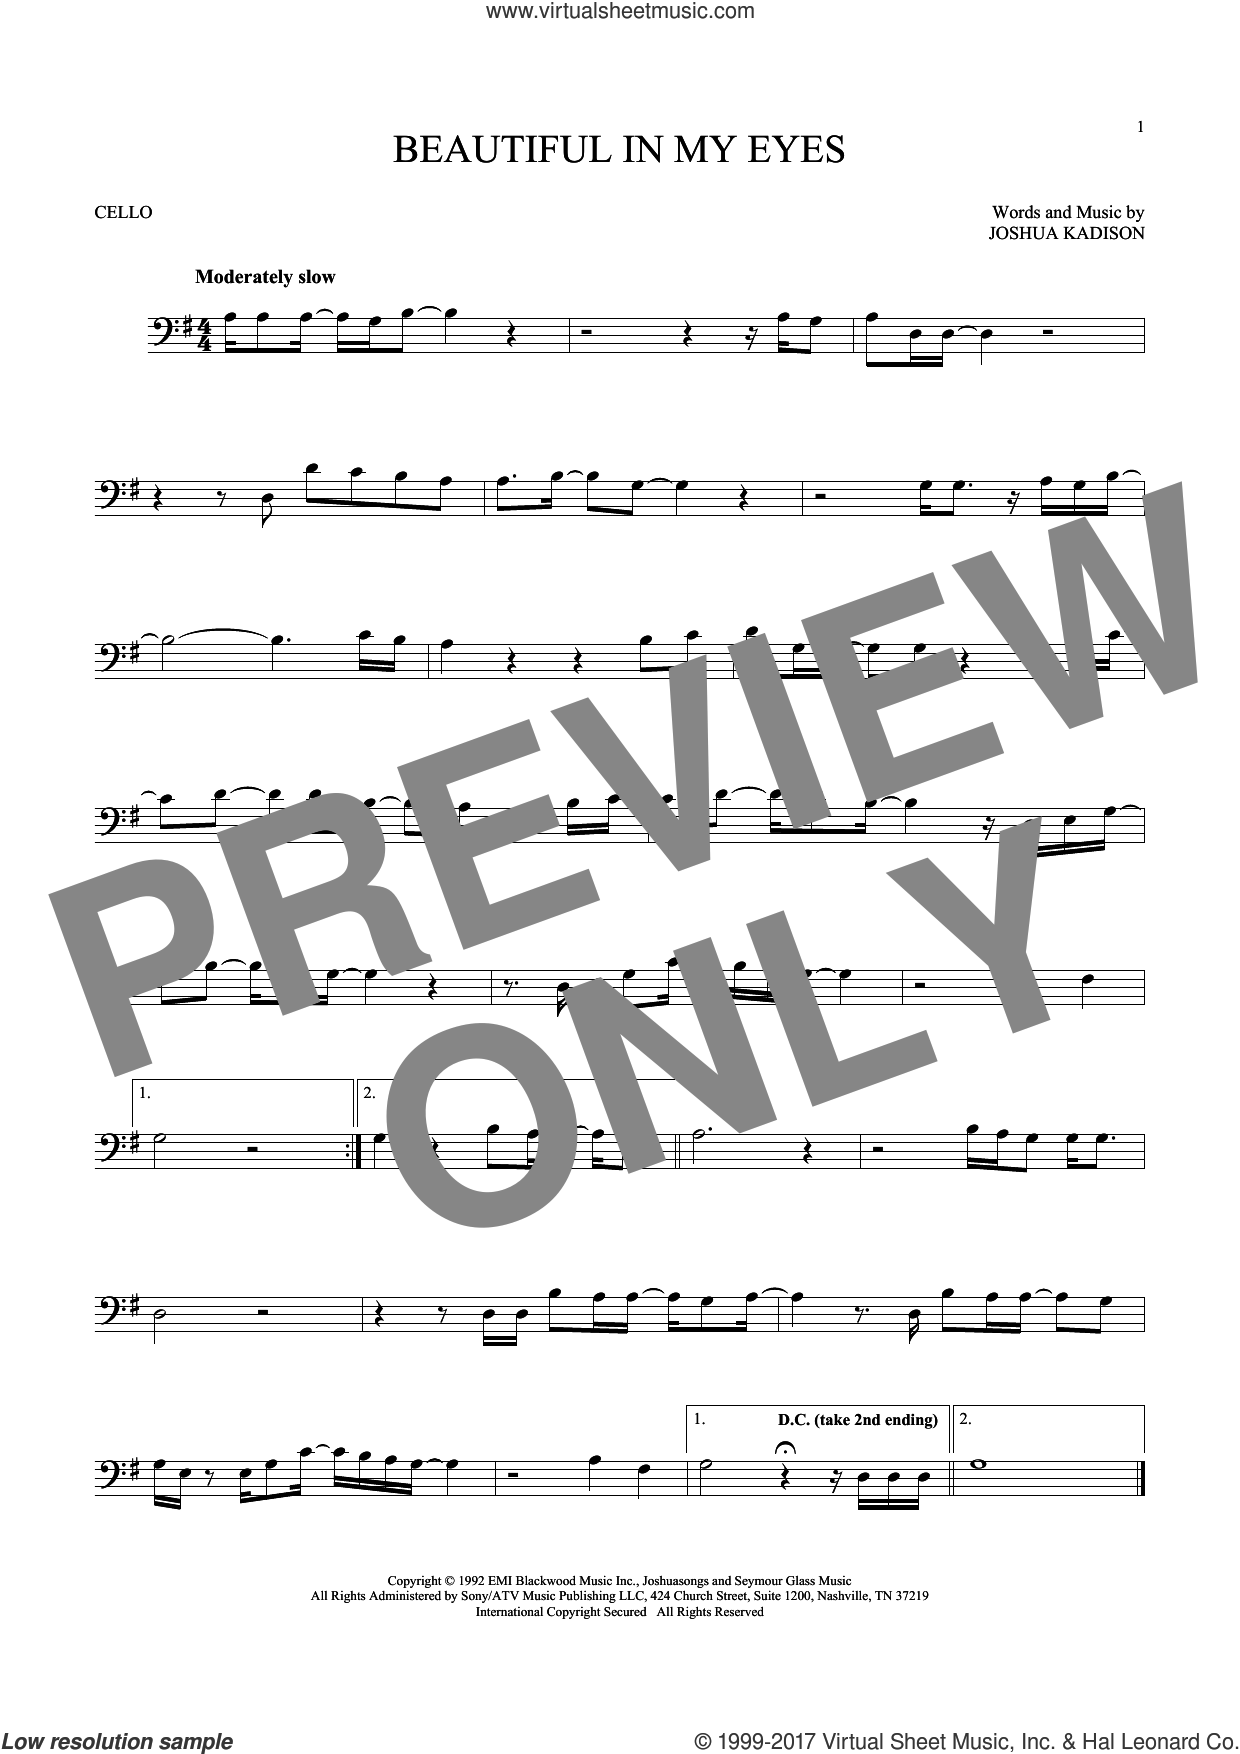 Beautiful In My Eyes sheet music for cello solo by Joshua Kadison, intermediate skill level